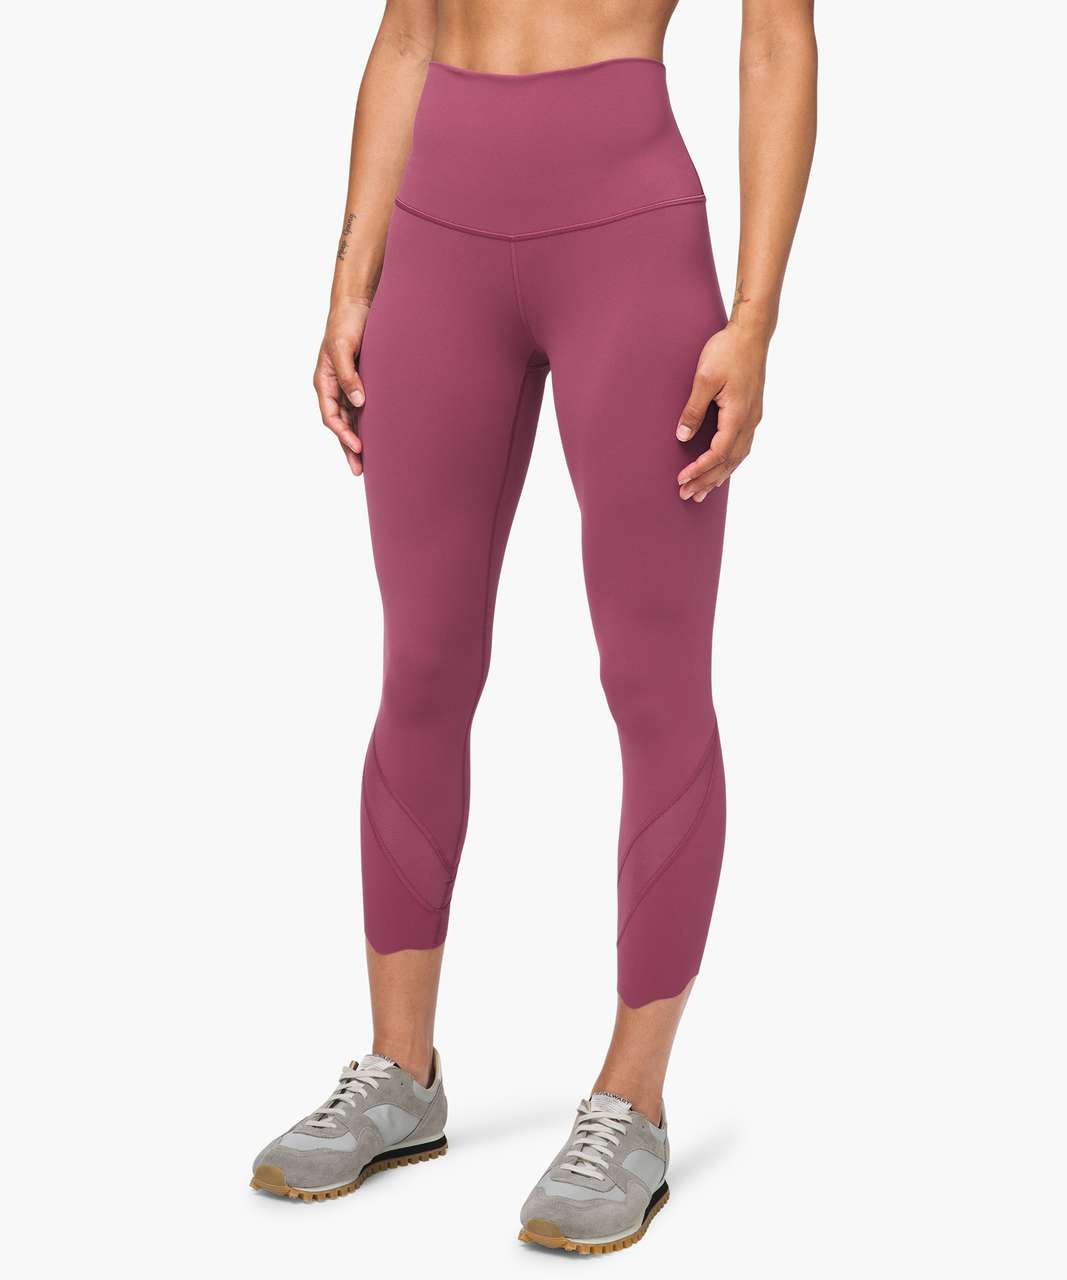 "Lululemon Wunder Under Crop High-Rise *Roll Down Scallop Full-On Luxtreme 24"" - Plumful"